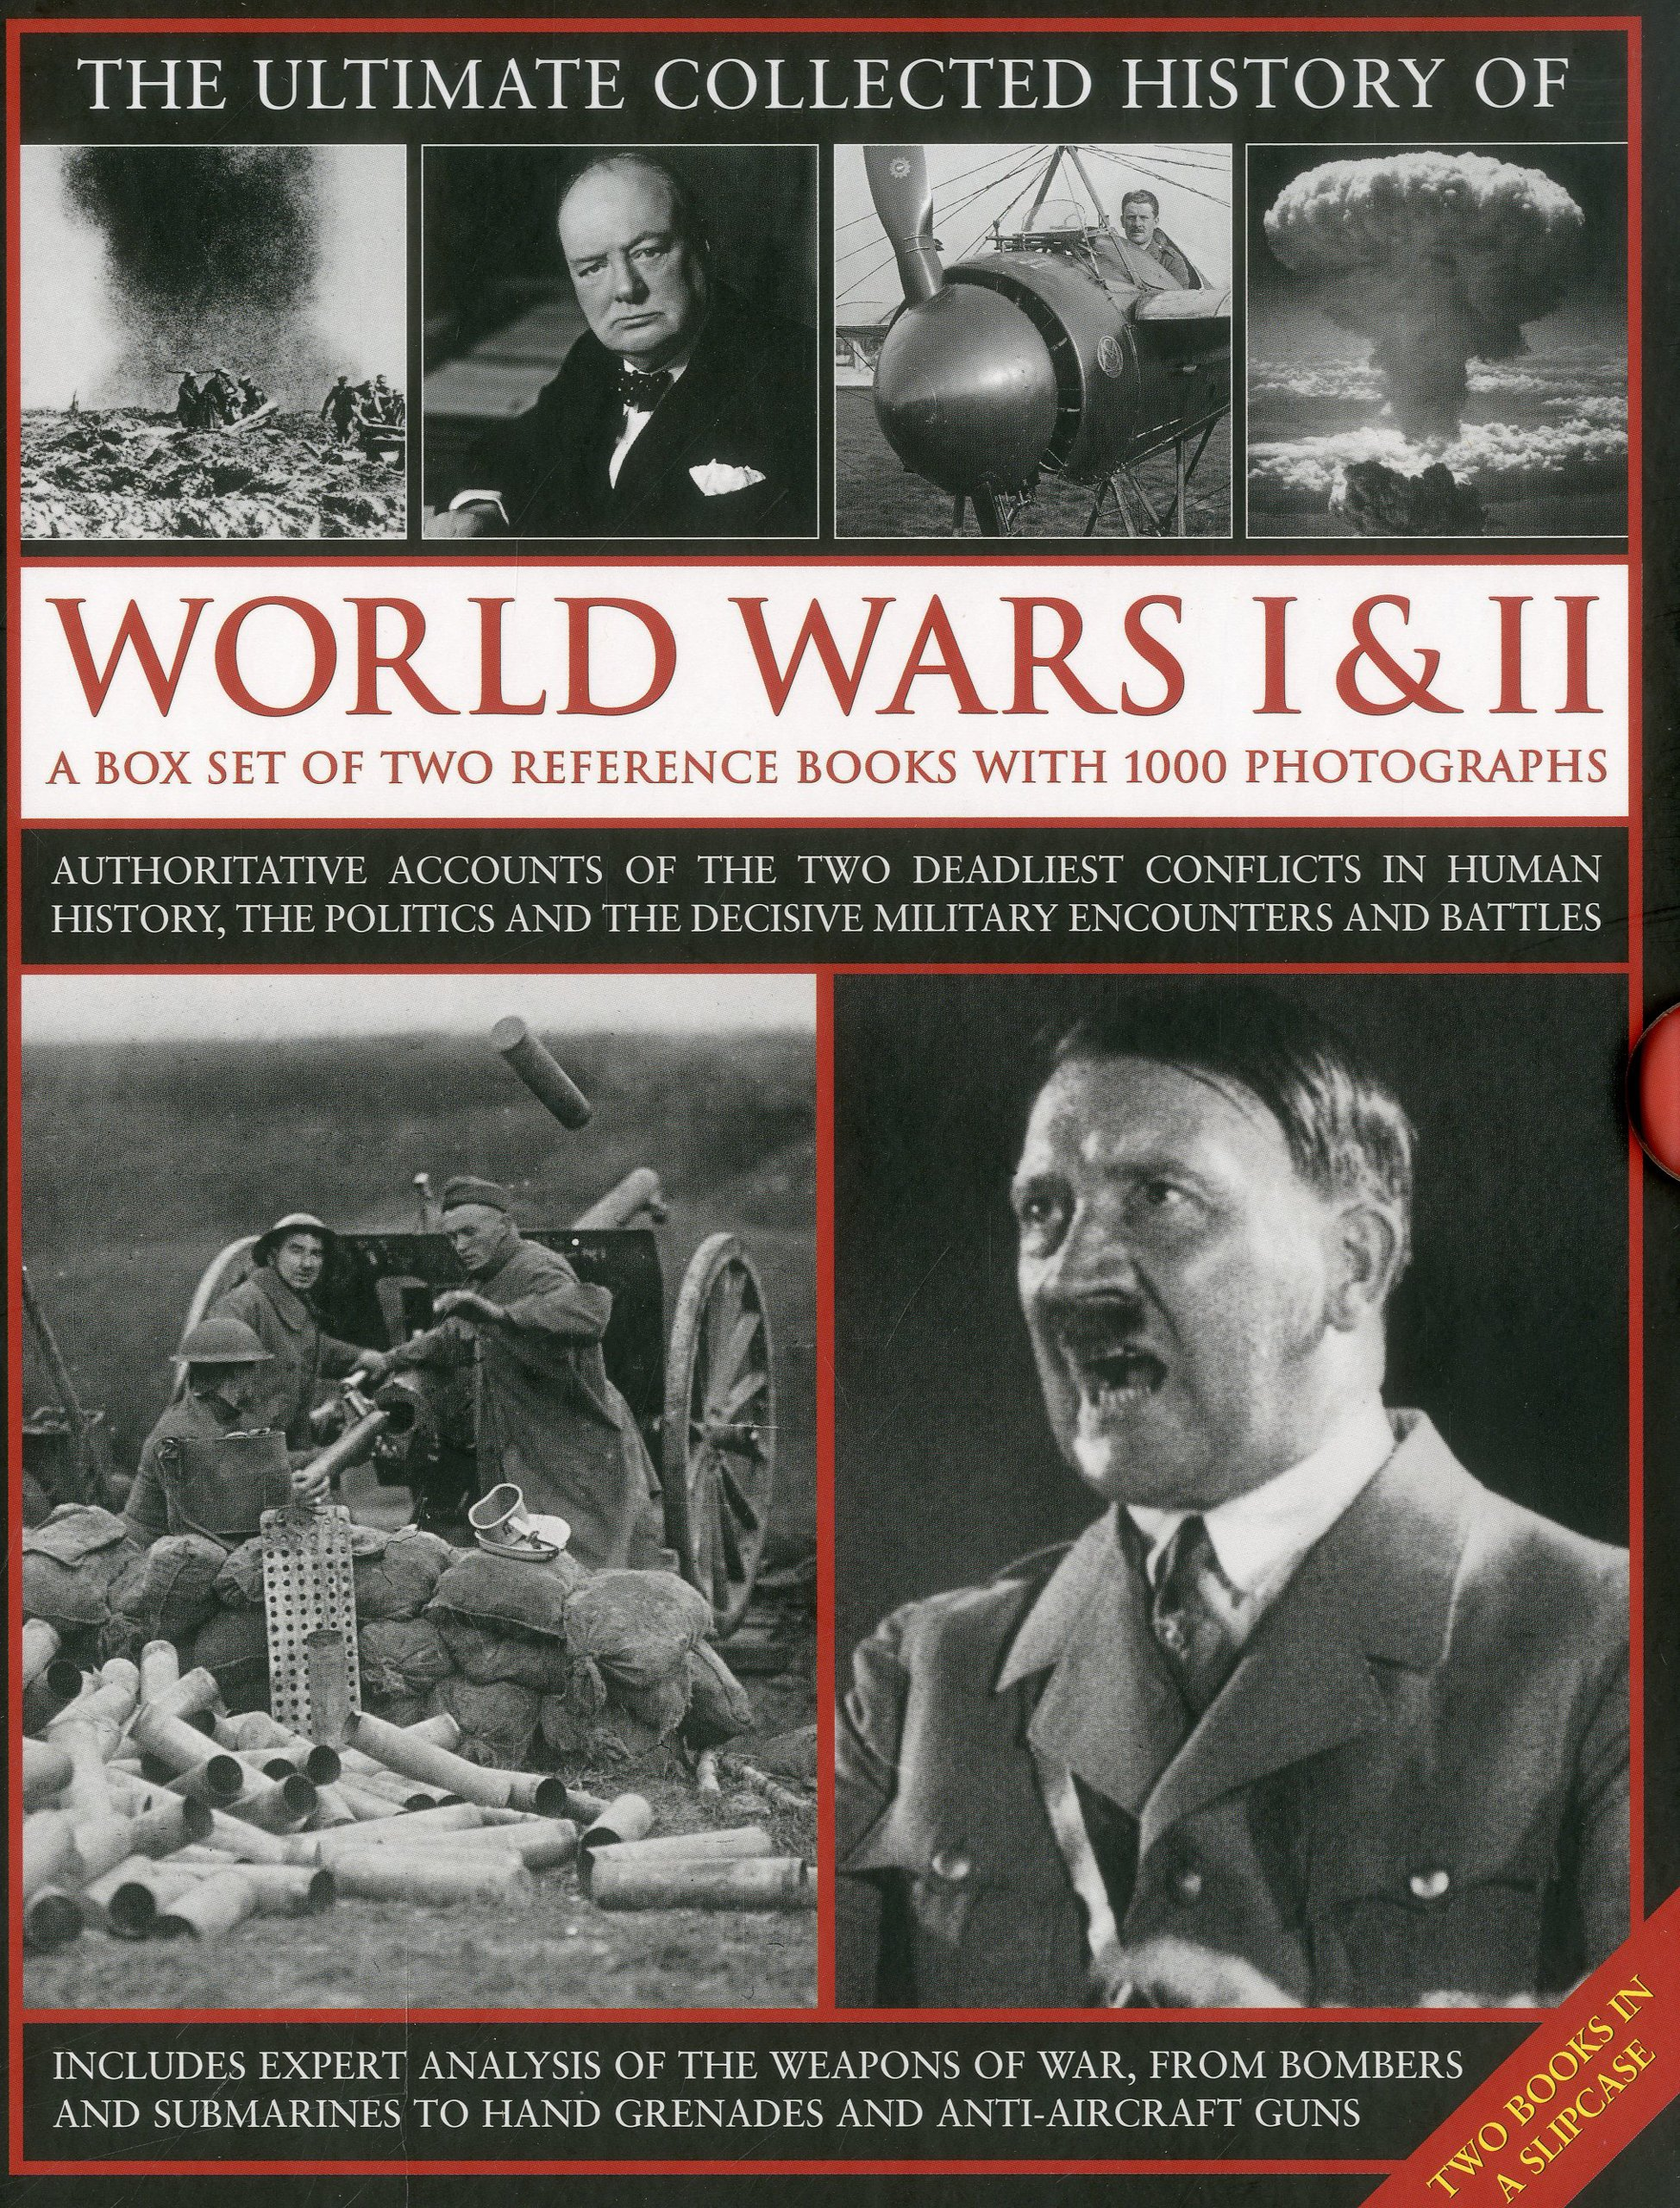 The Ultimate Collected History of World Wars I & II: A box set of two reference books with 1000 photographs pdf